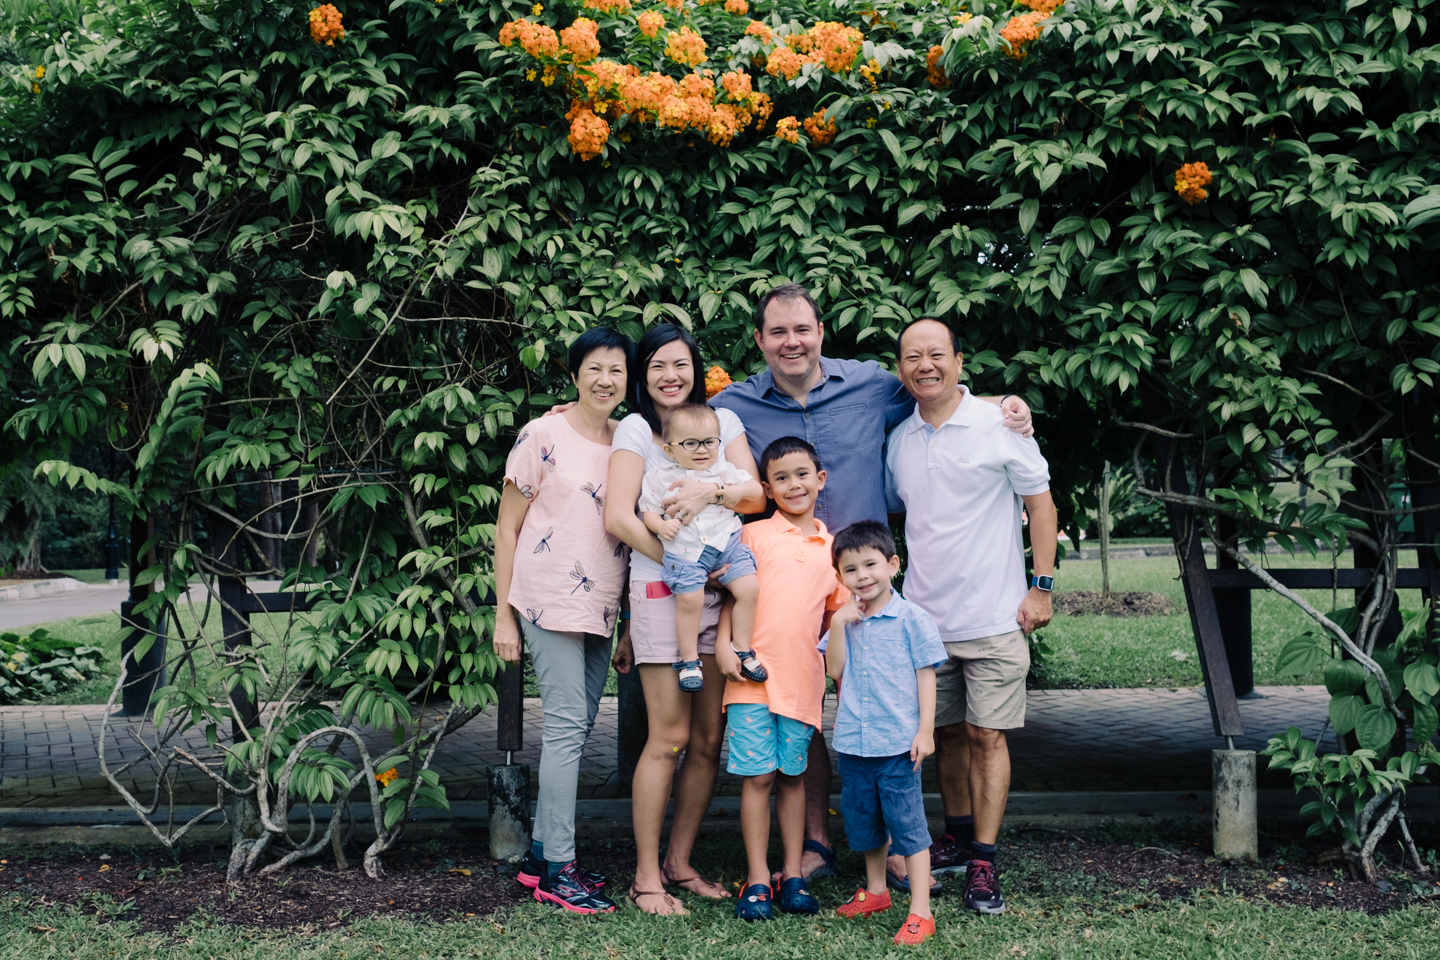 Kwek Family - Christopher Jackson & Joy Kwek take their family out for an afternoon walk and get some portraits taken at the same time.